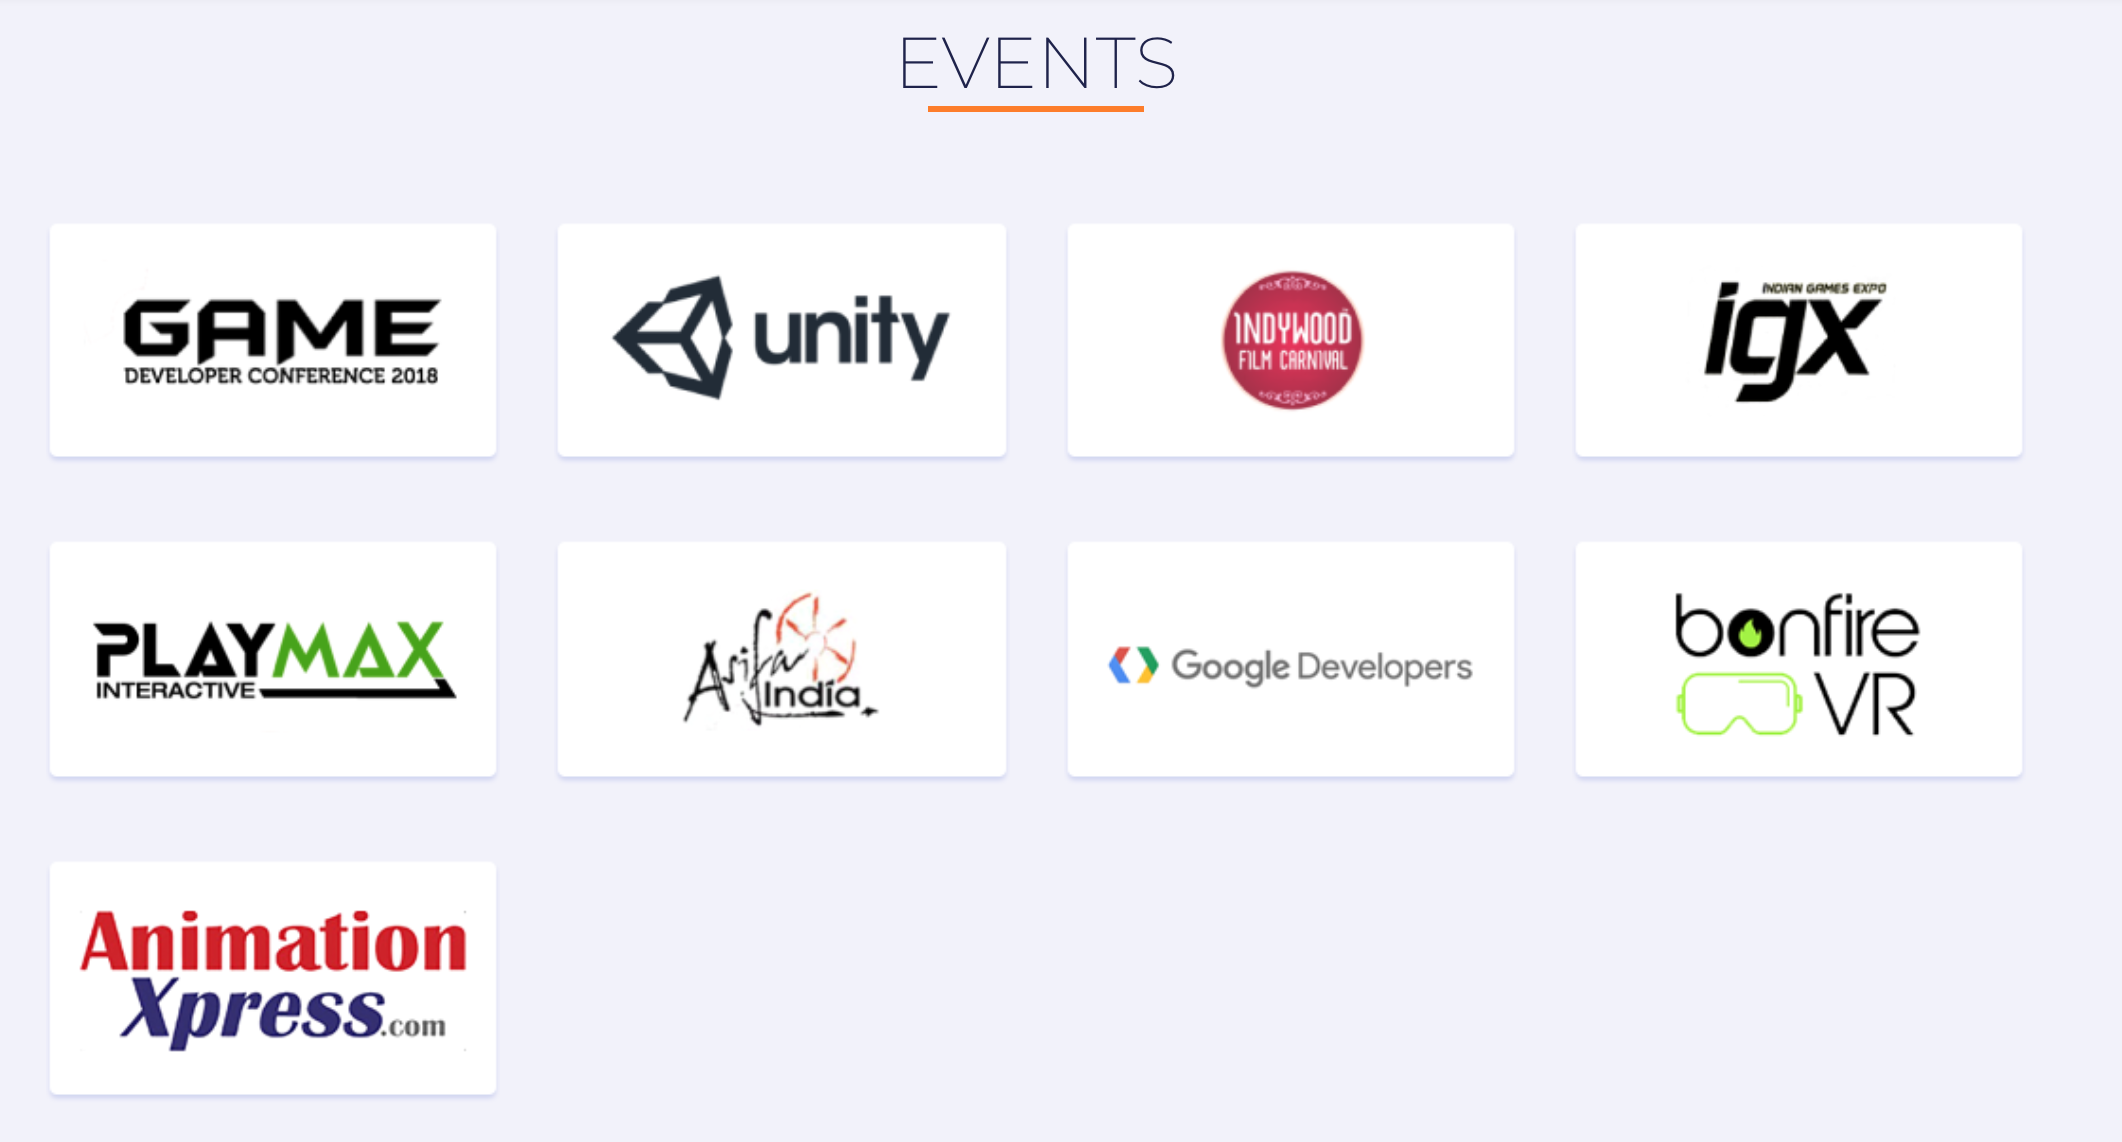 Events at IndiaJoy